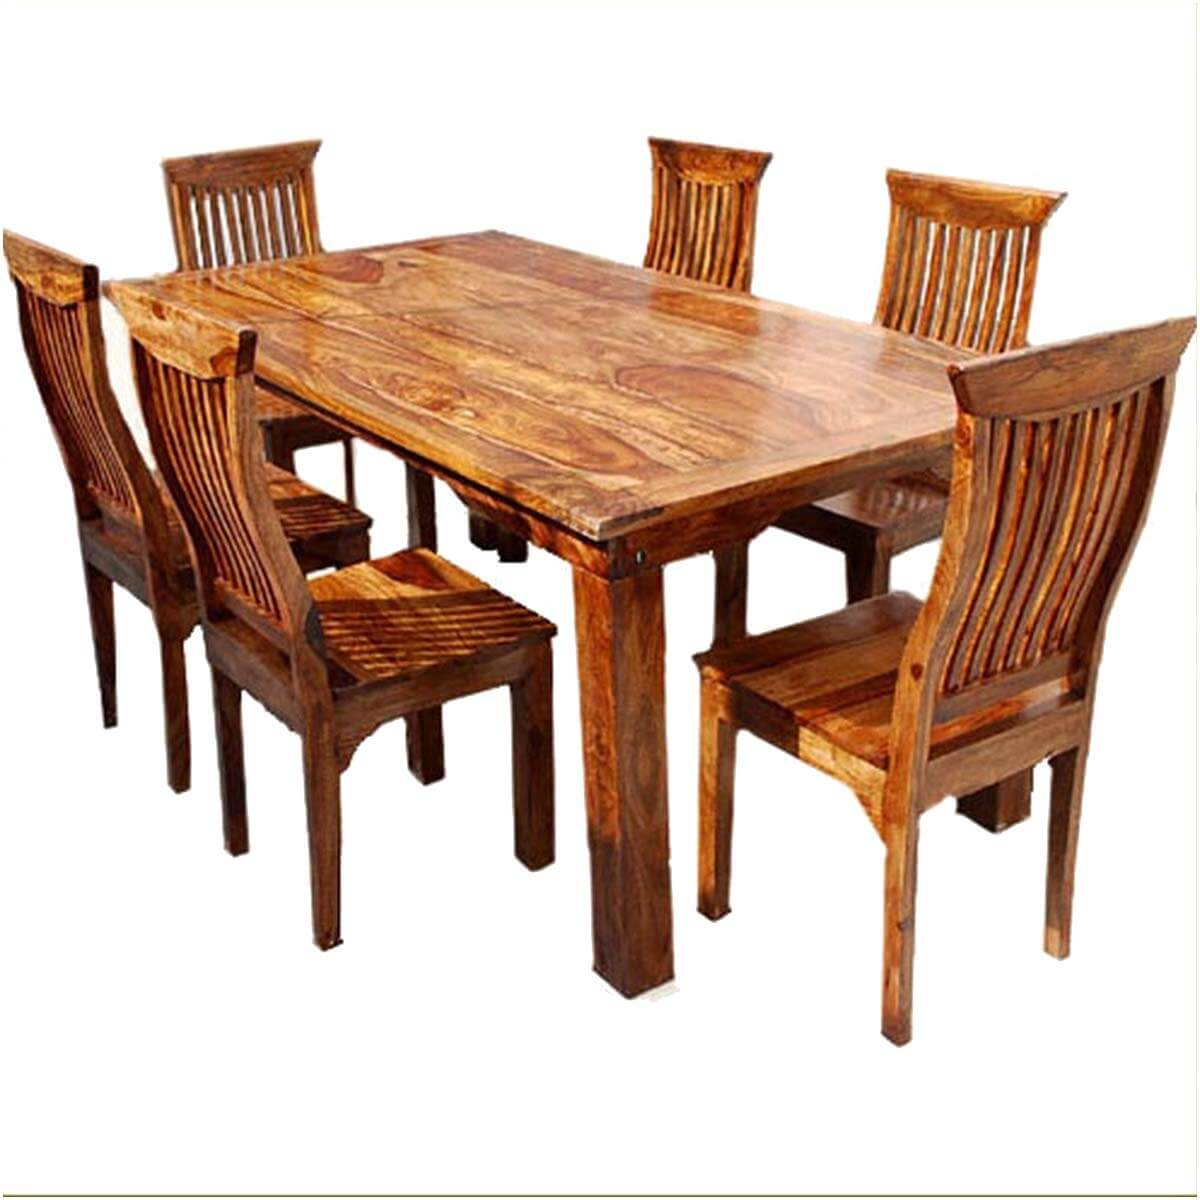 Oak Kitchen Tables And Chairs Sets: Dallas Ranch Solid Wood Rustic Dining Table Chairs & Hutch Set